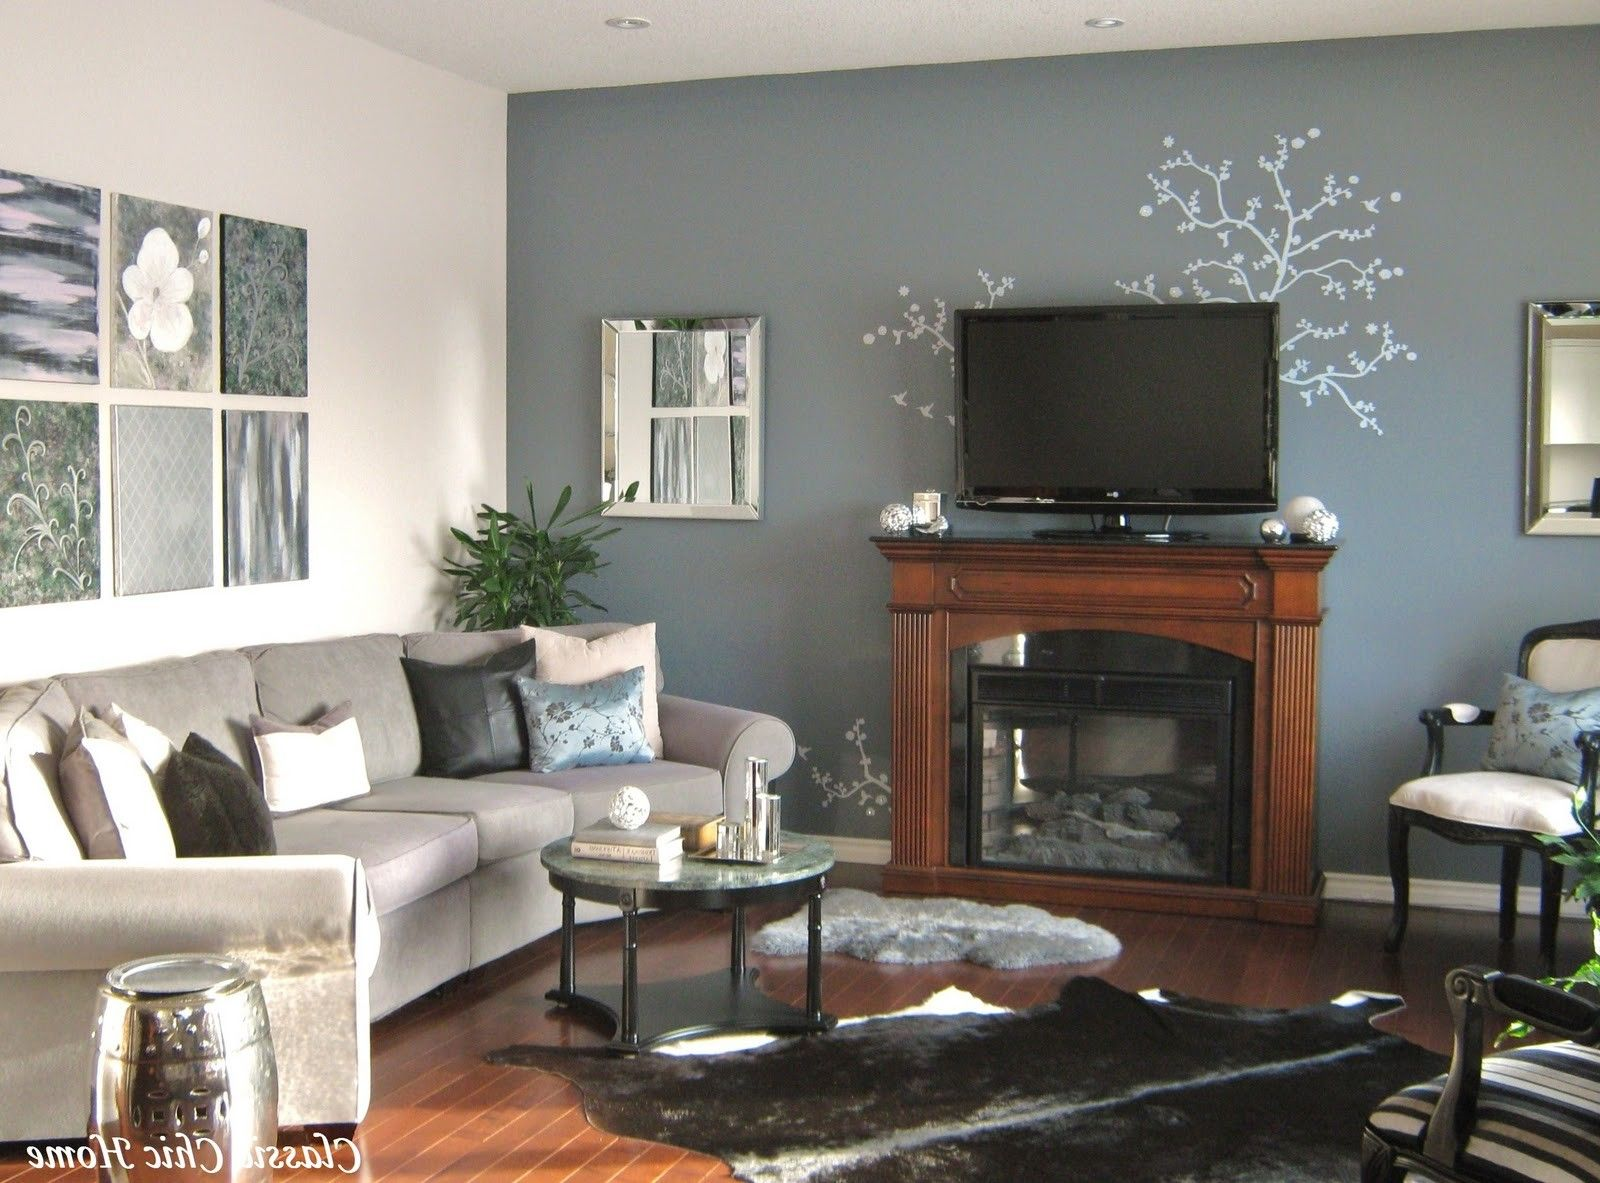 Painting A Room Two Colors Opposite Walls Classic Living Room Paint Family Room Colors Living Room Wall